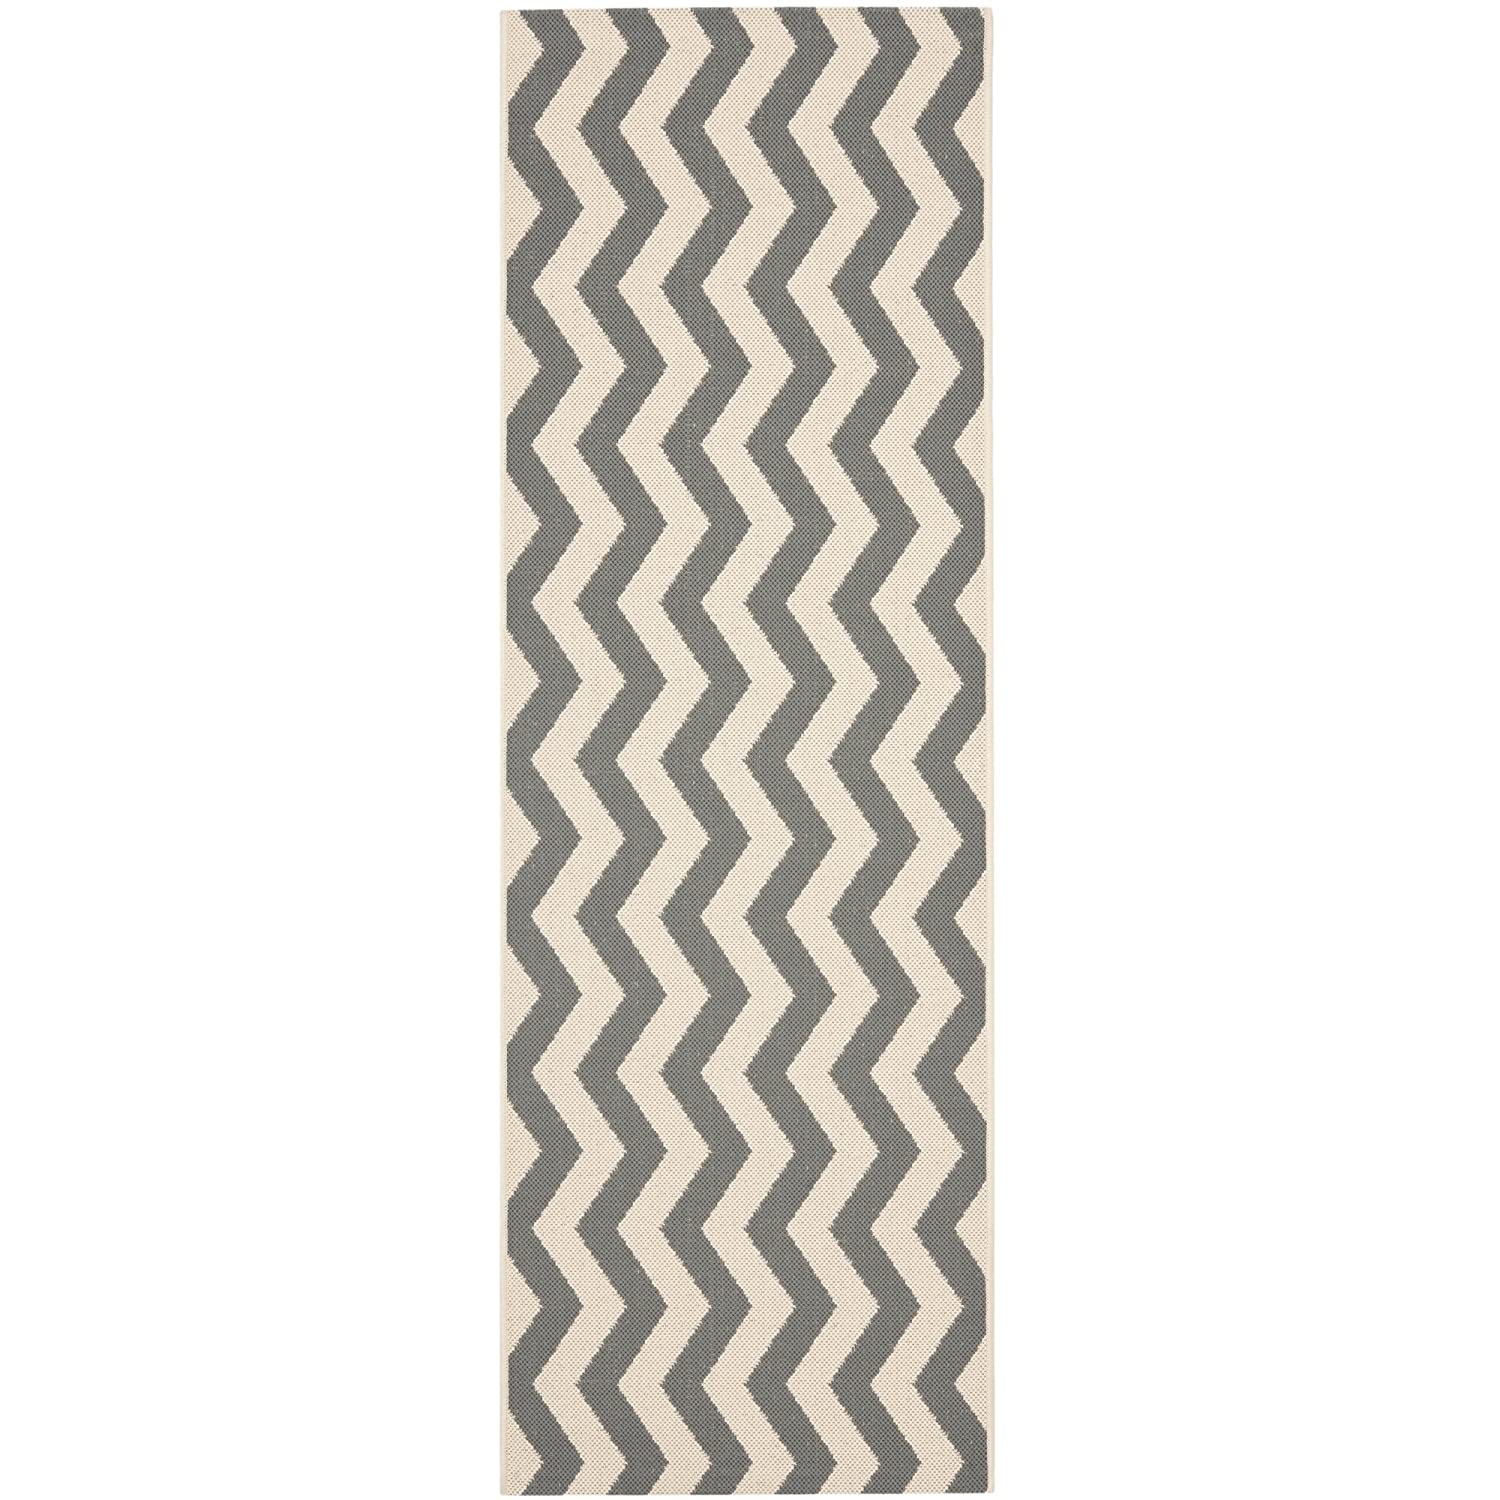 Safavieh Courtyard Collection CY6245-256 Black and Beige Indoor/Outdoor Runner, 2 feet 3 inches by 6 feet 7 inches (2'3 x 6'7) CY6245-256-27